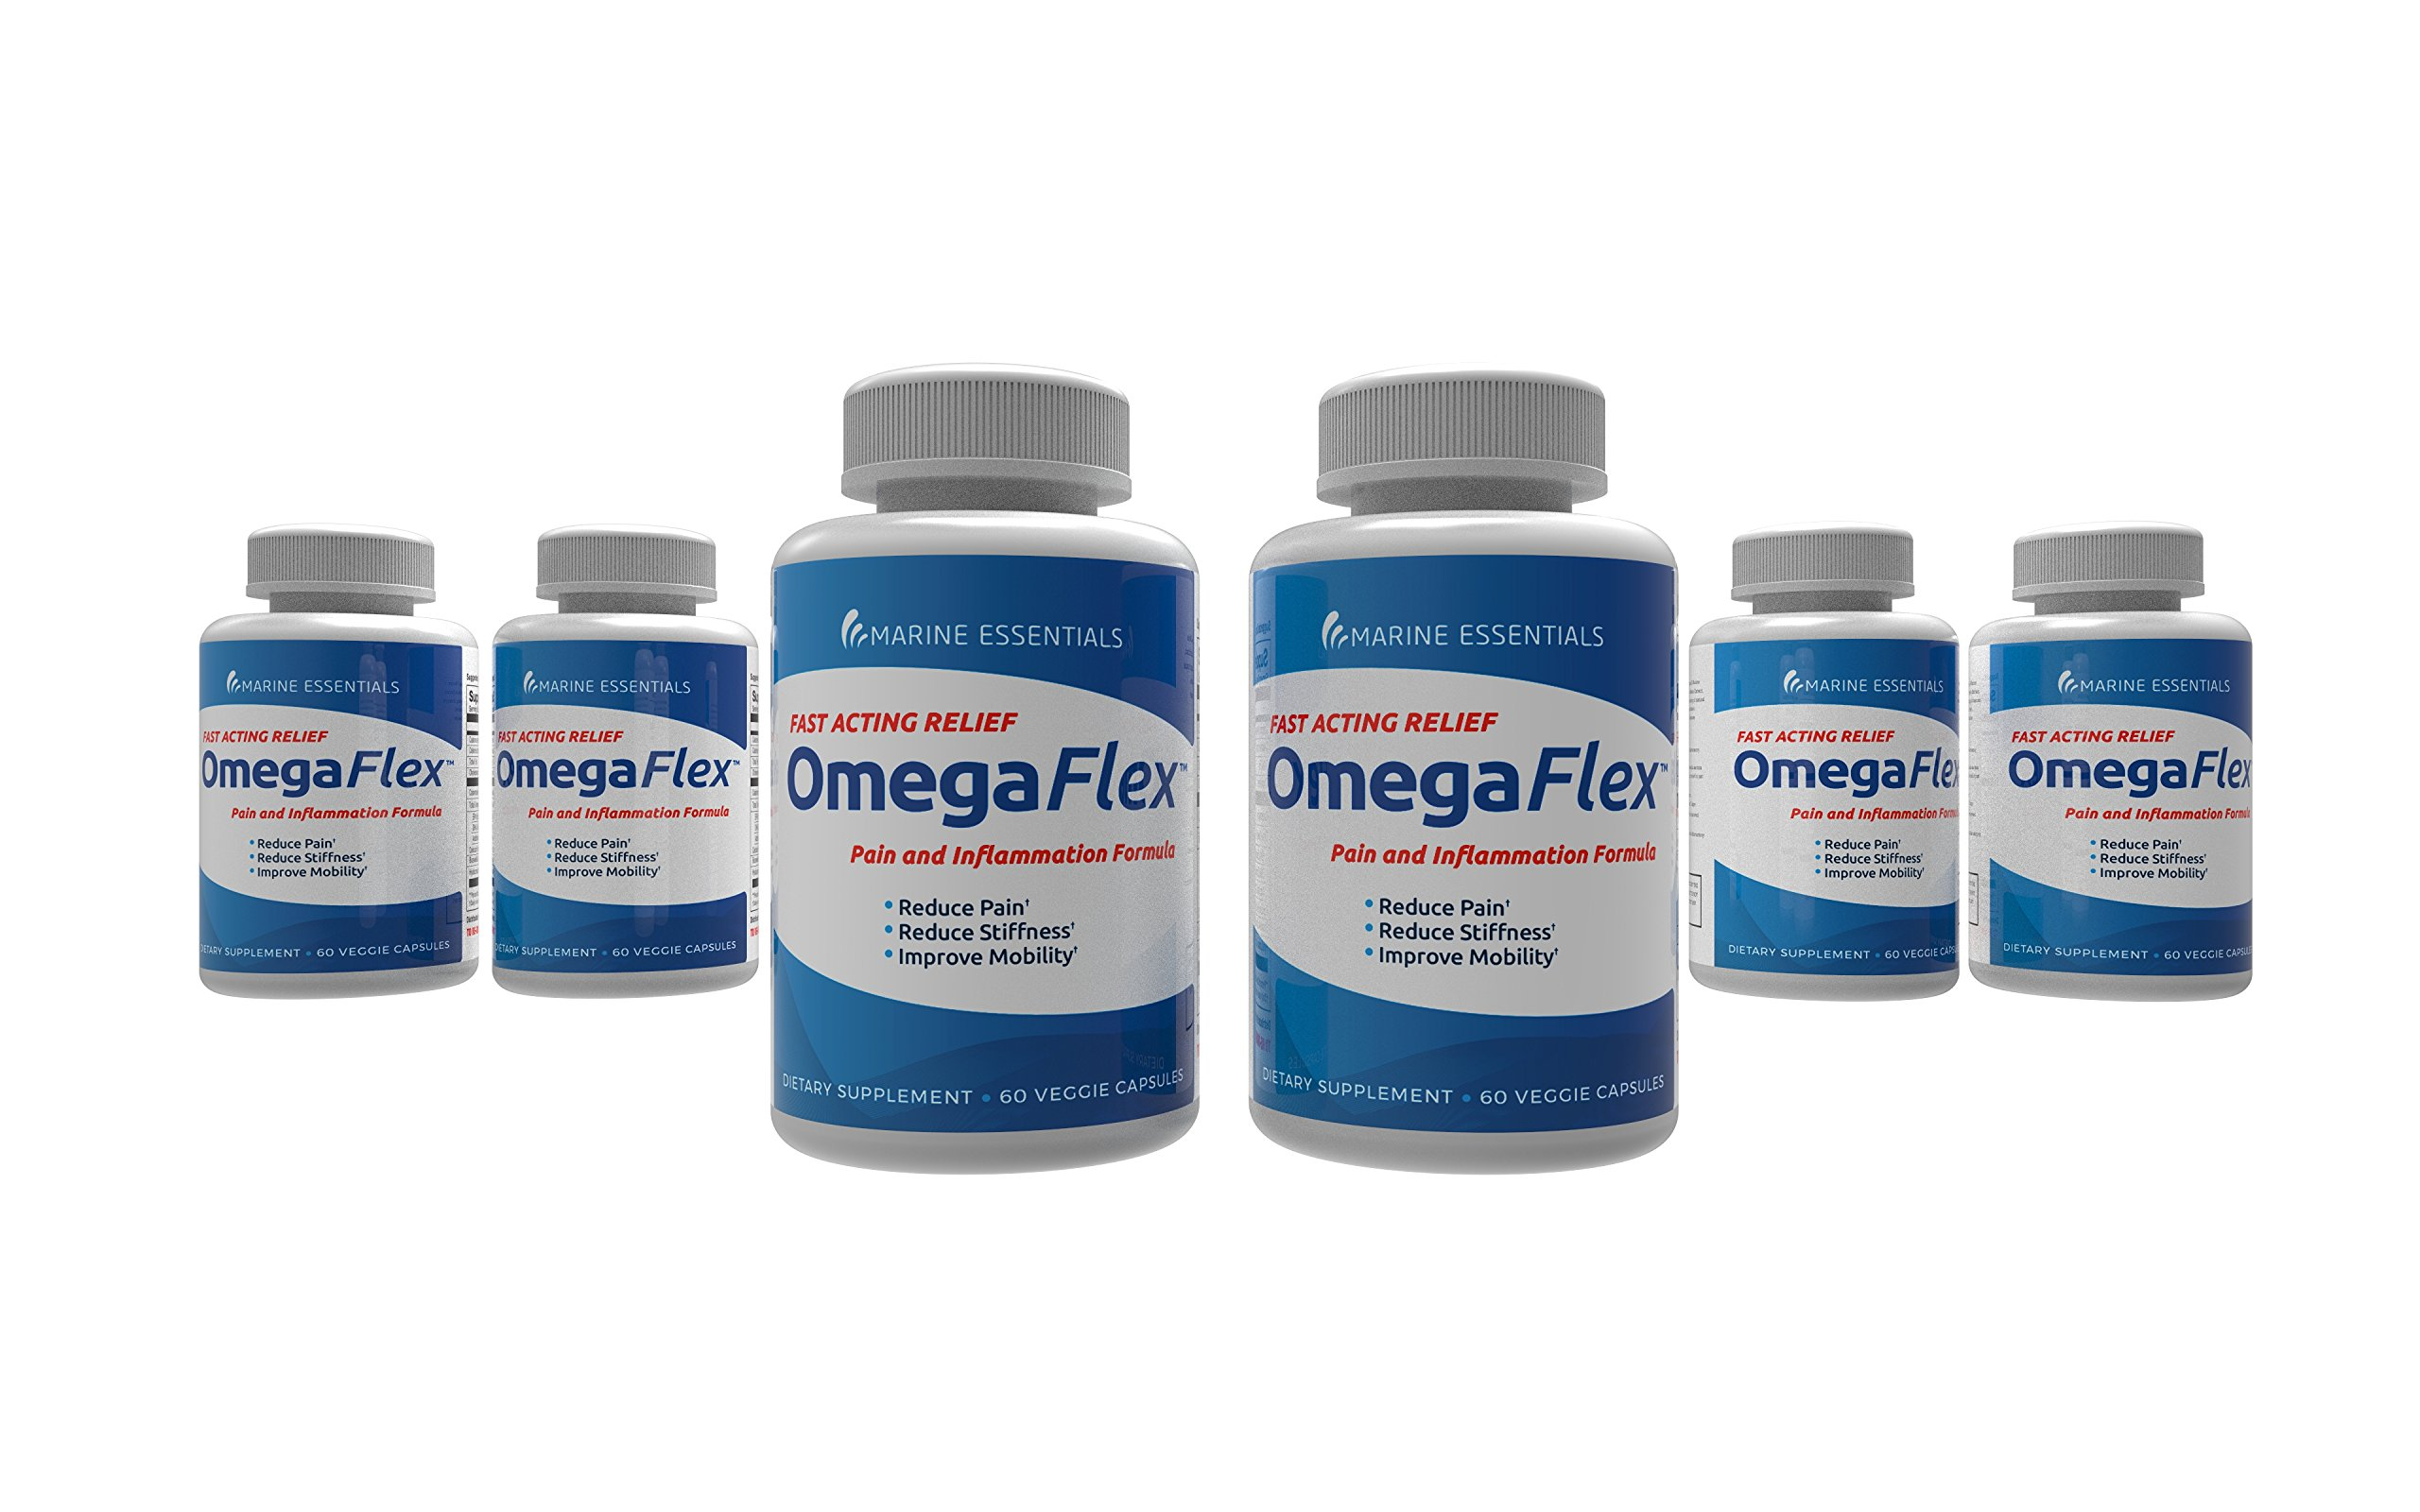 Omega Flex: Reduce Pain, Inflammation, Lubricate Joints, Help Increase Blood Flow, Lessen Stiffness in 7 Days (6 Bottles)